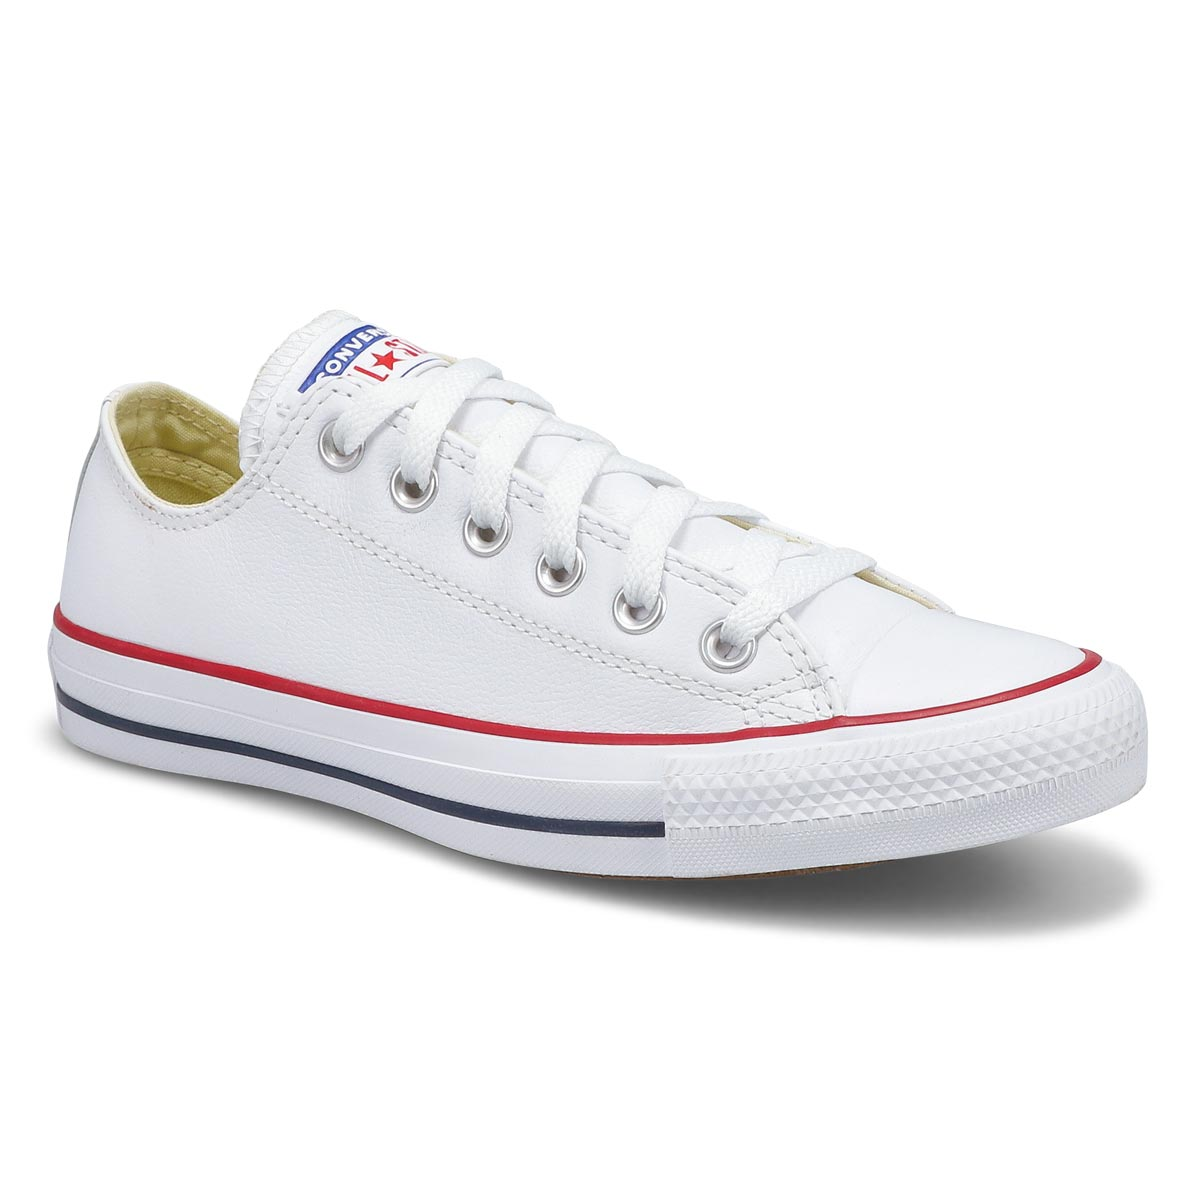 Lds CT All Star Leather Ox wht sneaker